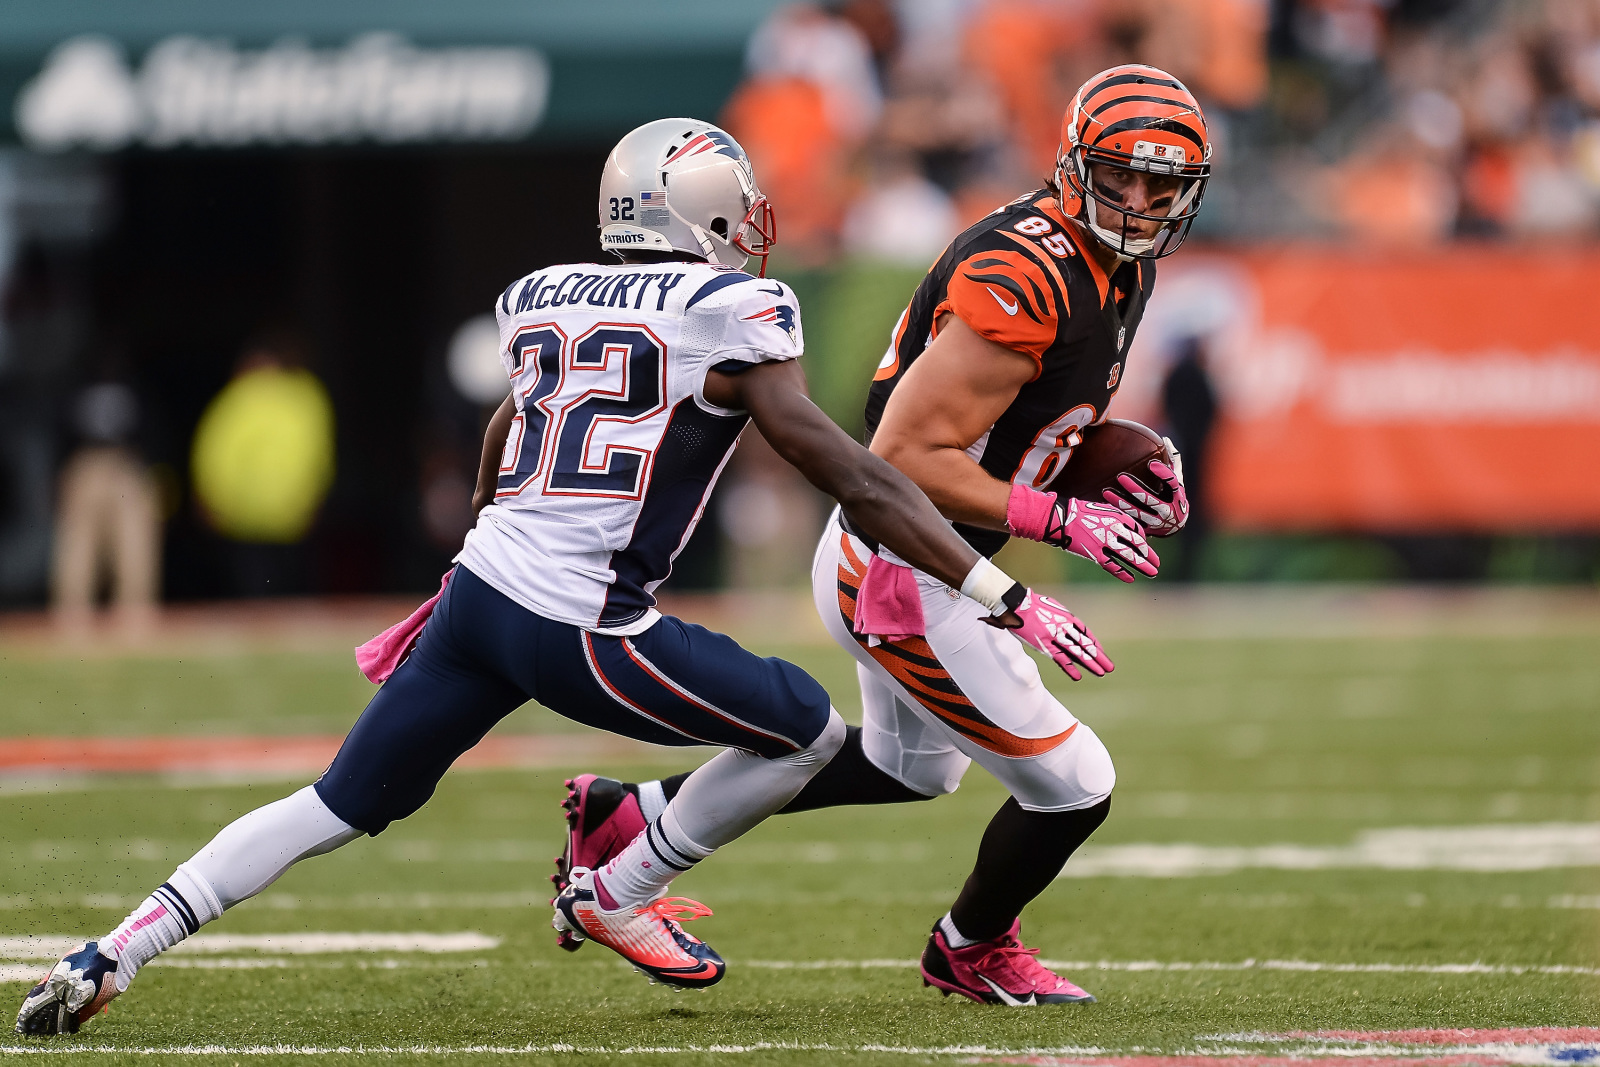 Patriots: Free agent tight end targets all have injury concerns